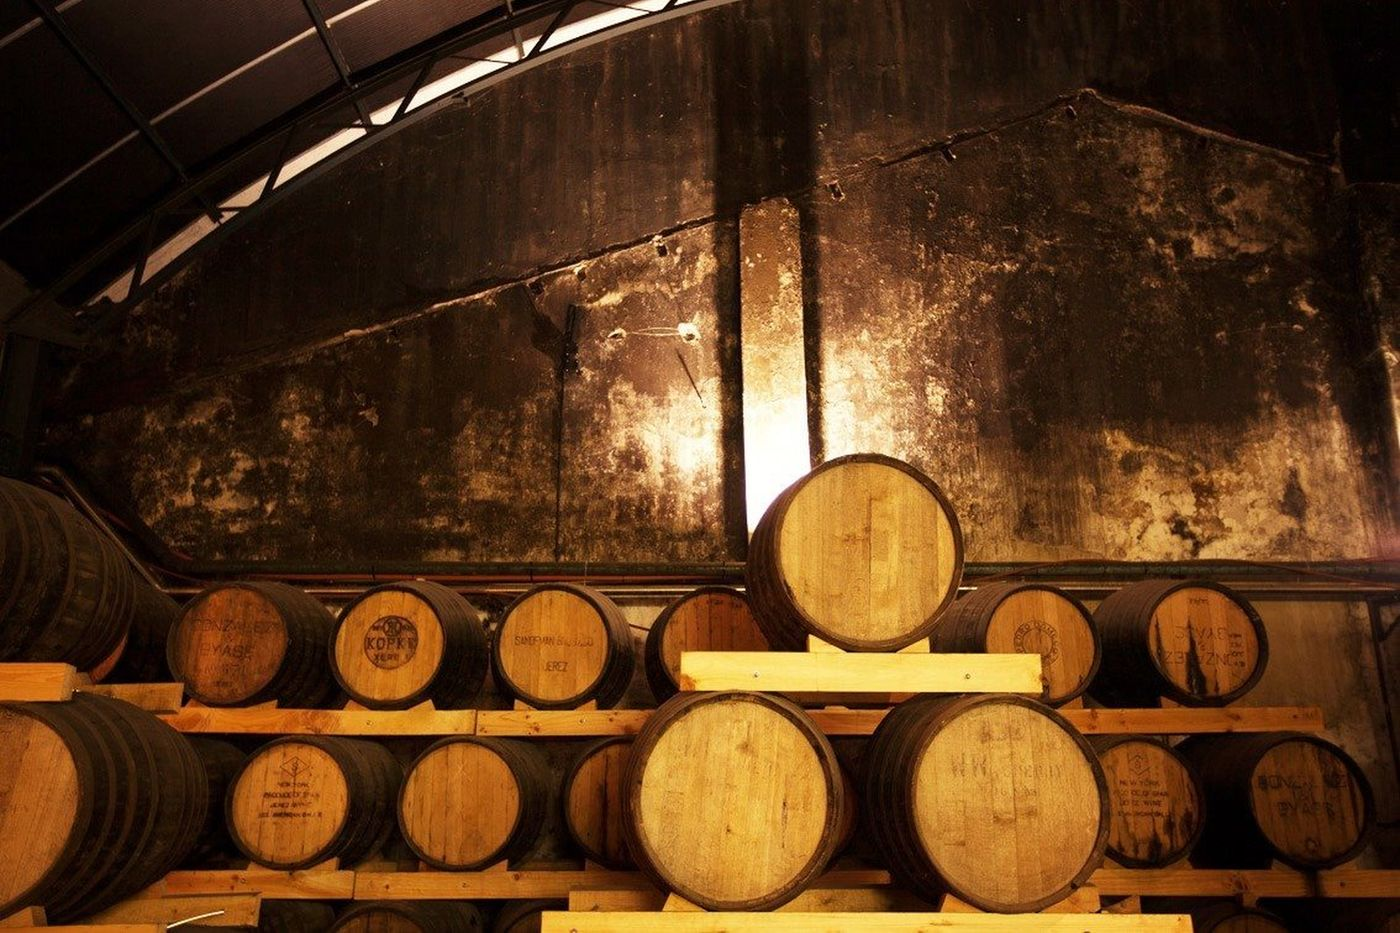 Potstill Brandy Maturing For Three Years